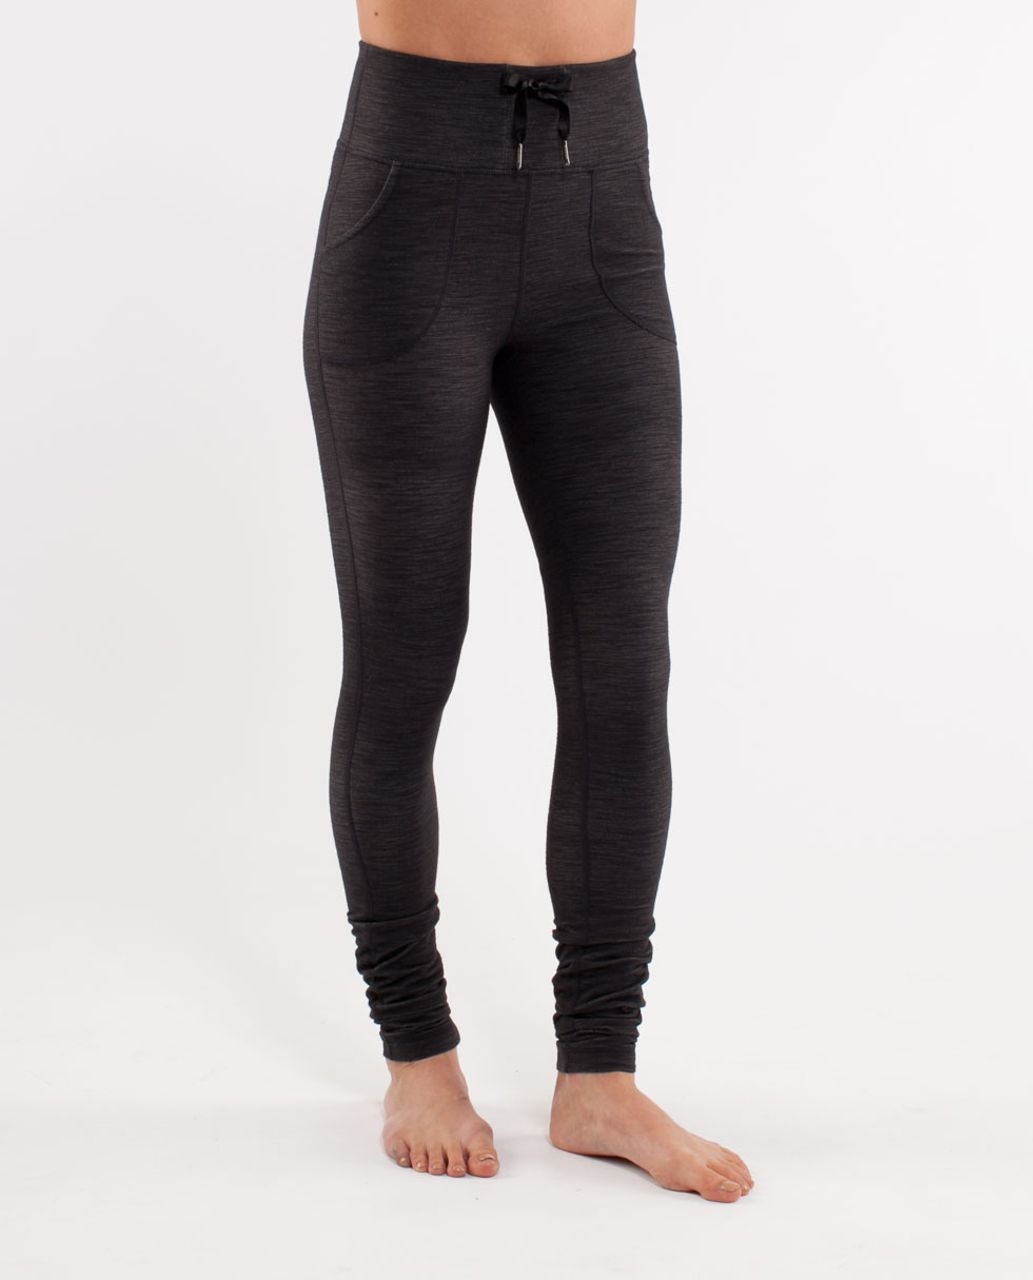 Lululemon Will Pant *Denim - Black Deep Coal Slub Denim